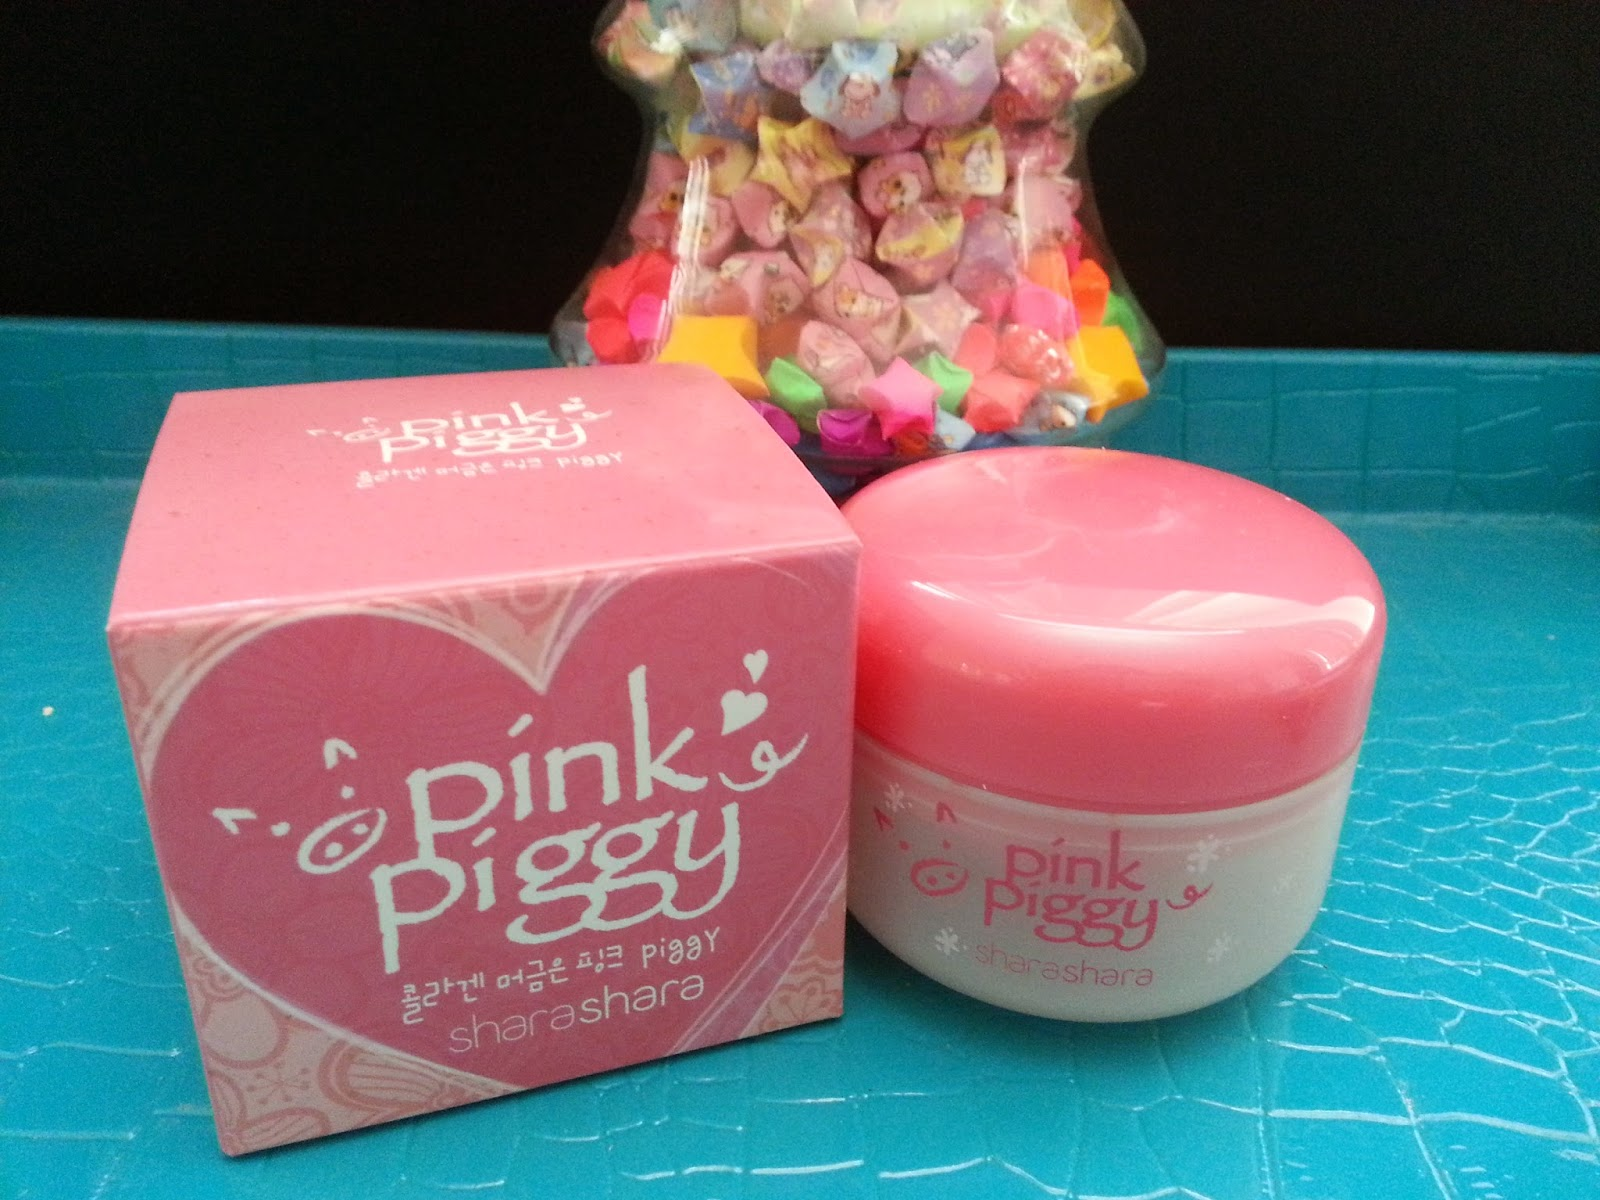 Shara Shara Pink Piggy Collagen Cream